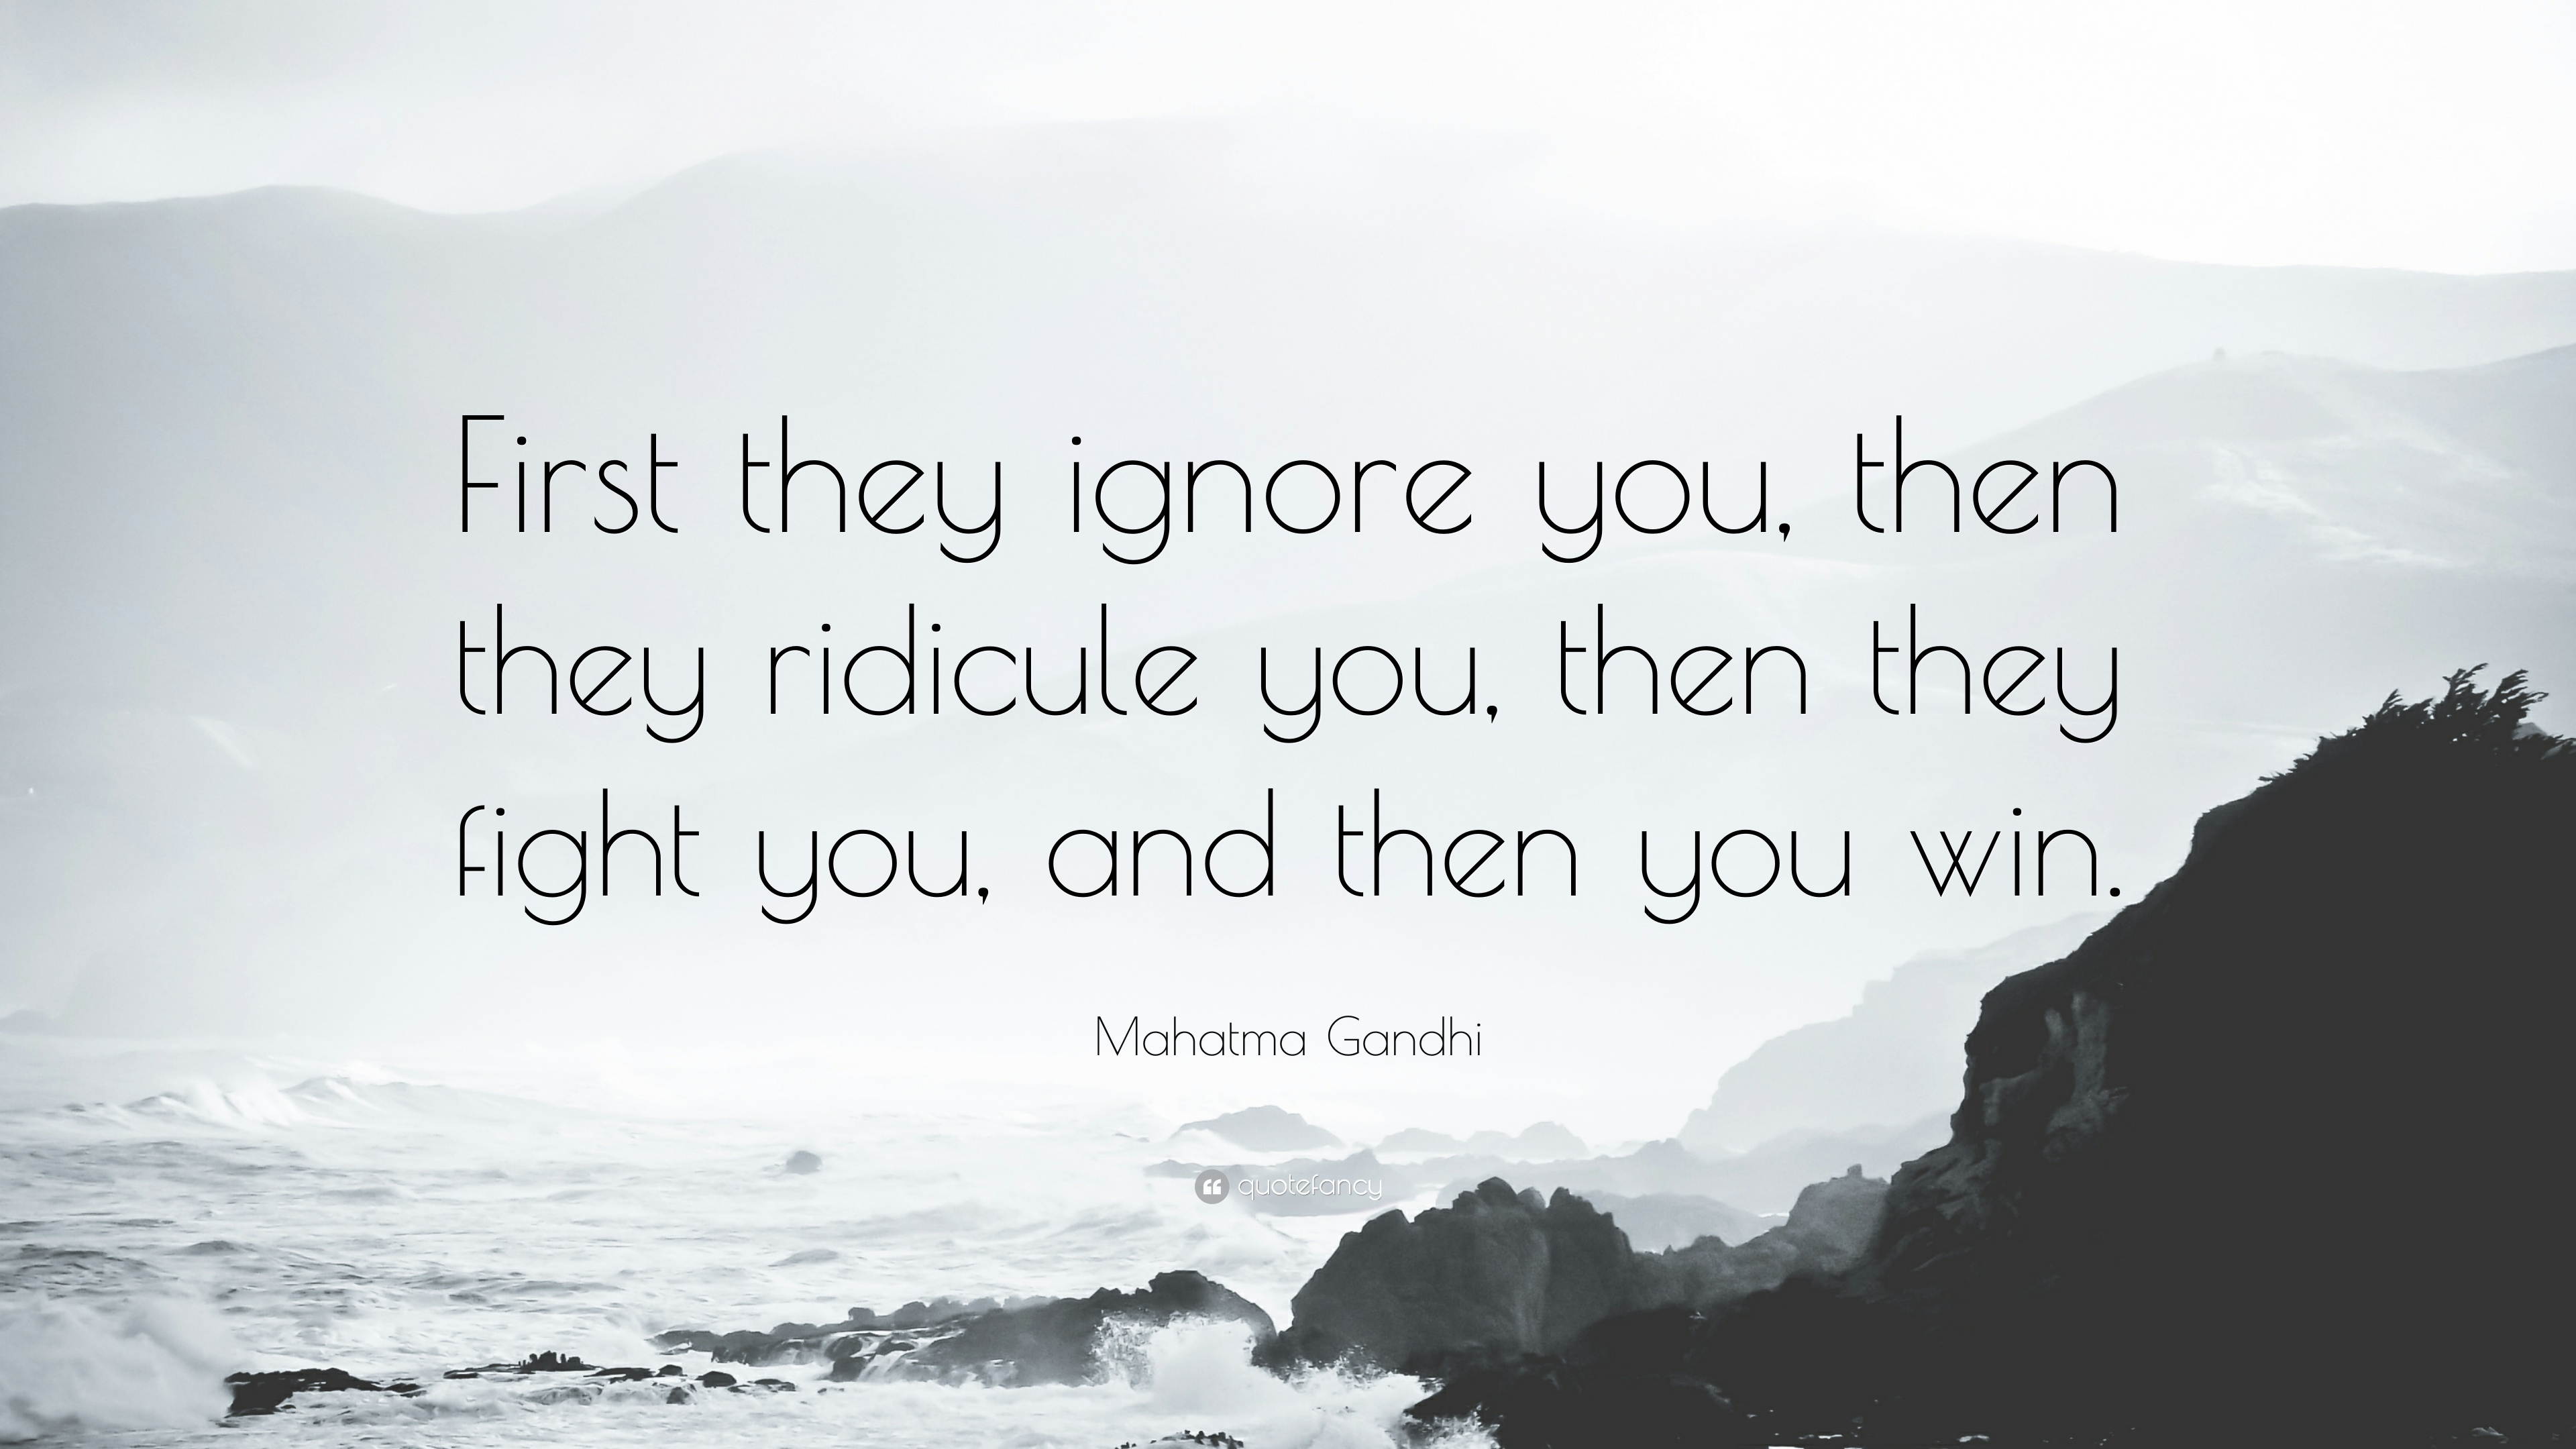 First they ignore you, then they ridicule you, then they fight you, and then you win. – Mahatma Gandhi [3840×2160]